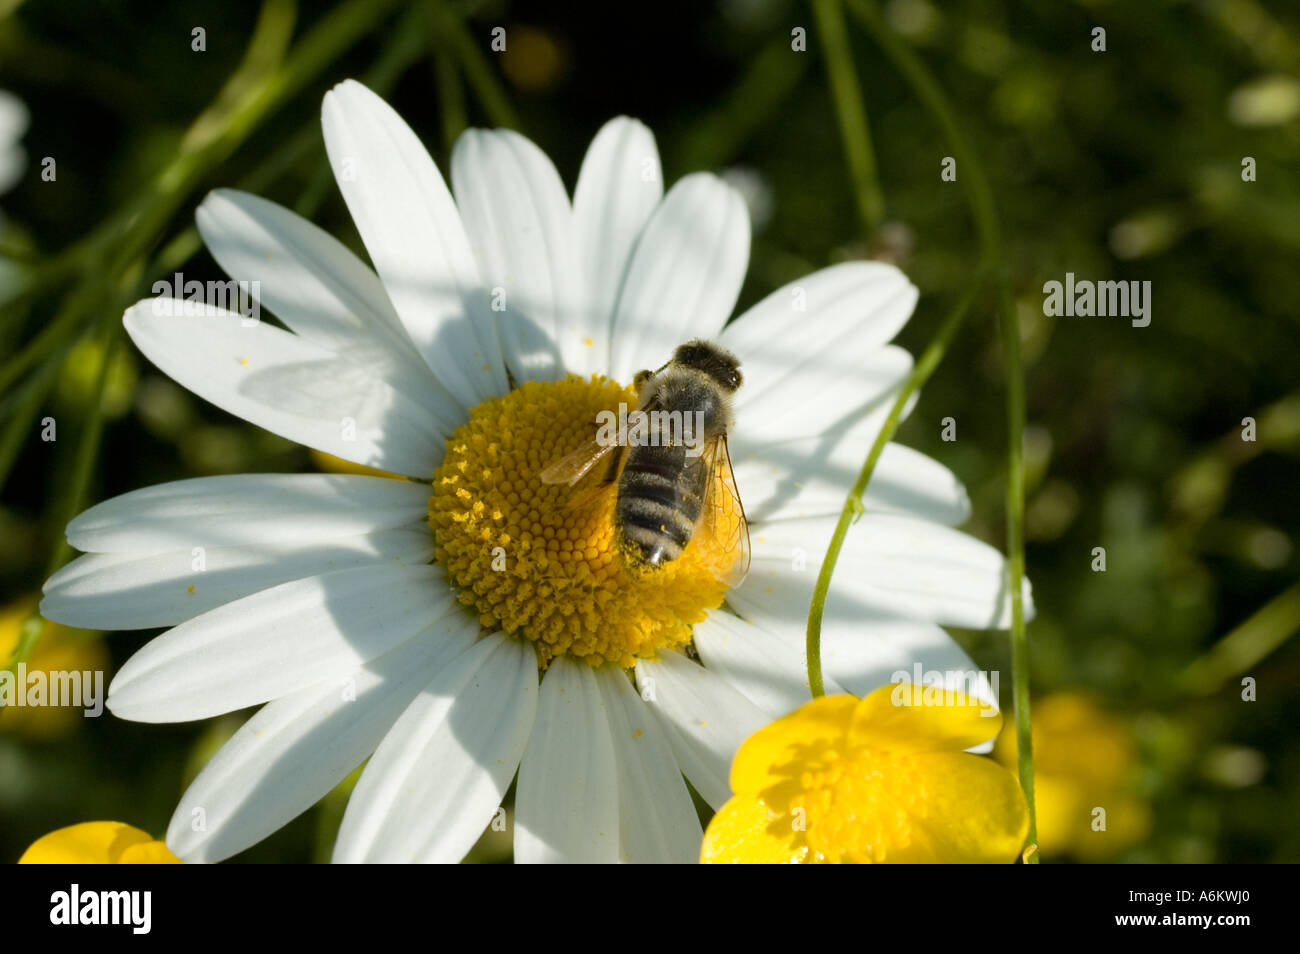 Common Flower With A Yellow Center And White Petals Stock Photos